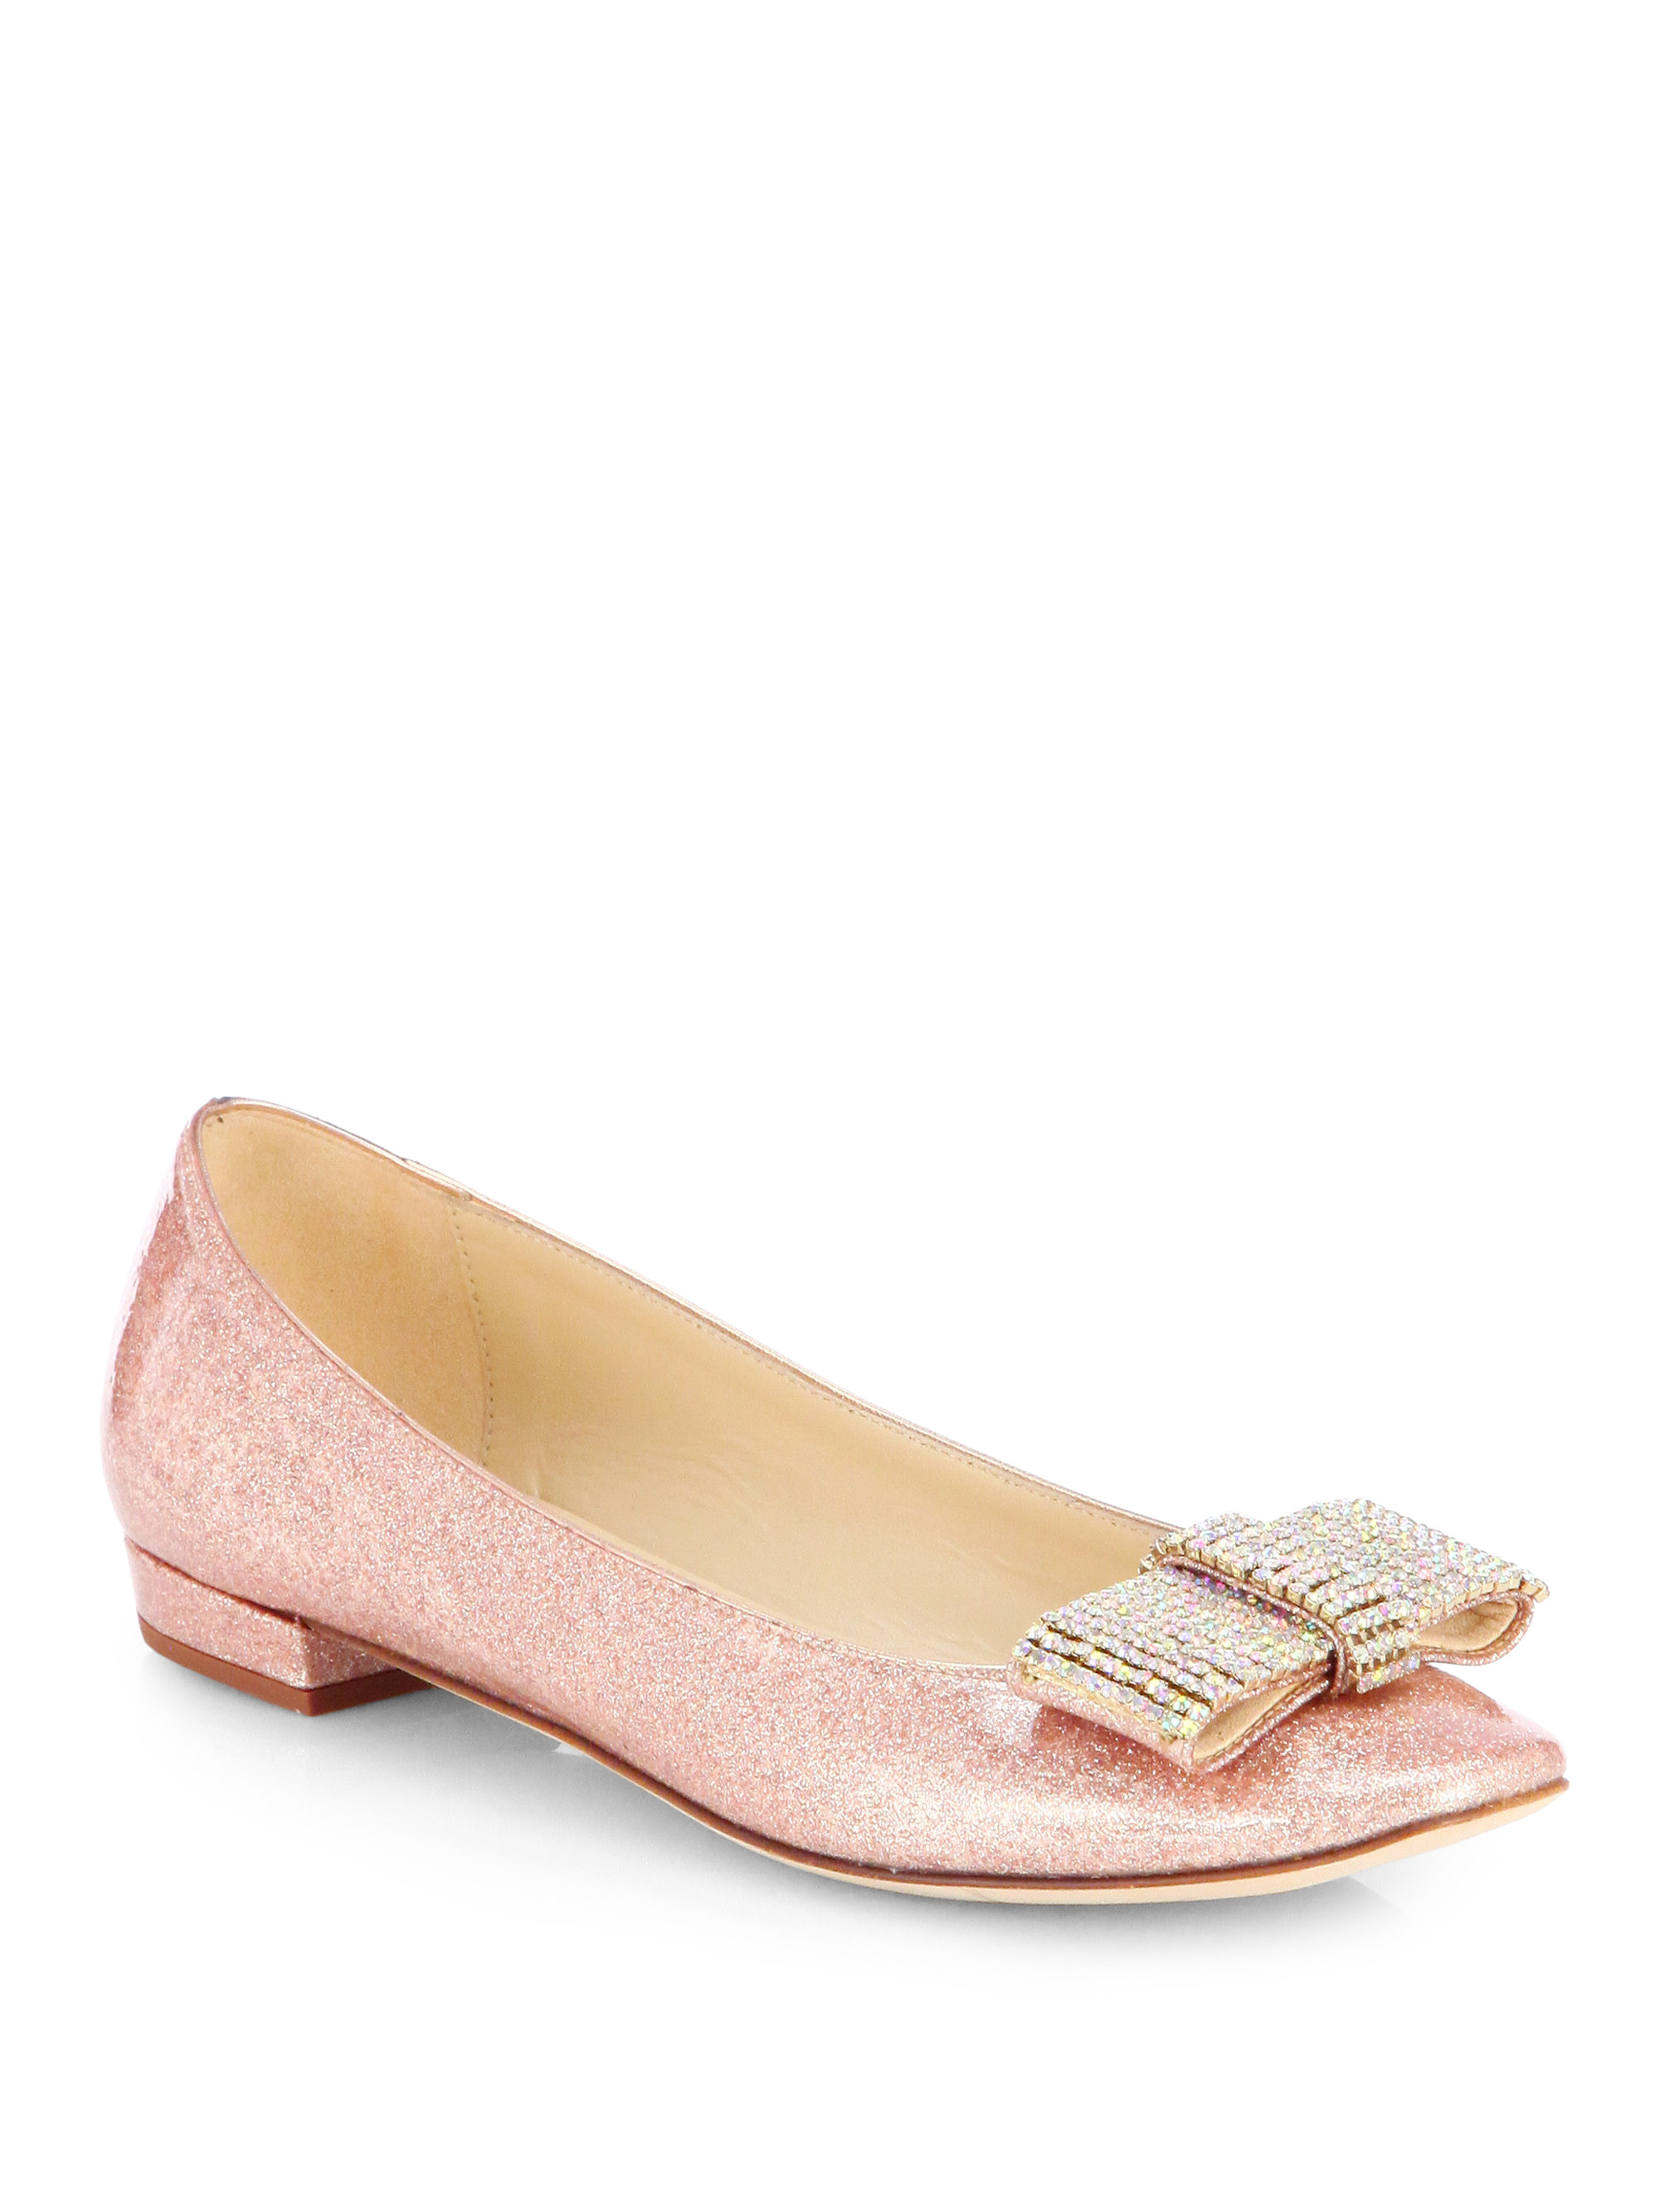 spade women Find great deals on ebay for kate spade shoes shop with confidence.